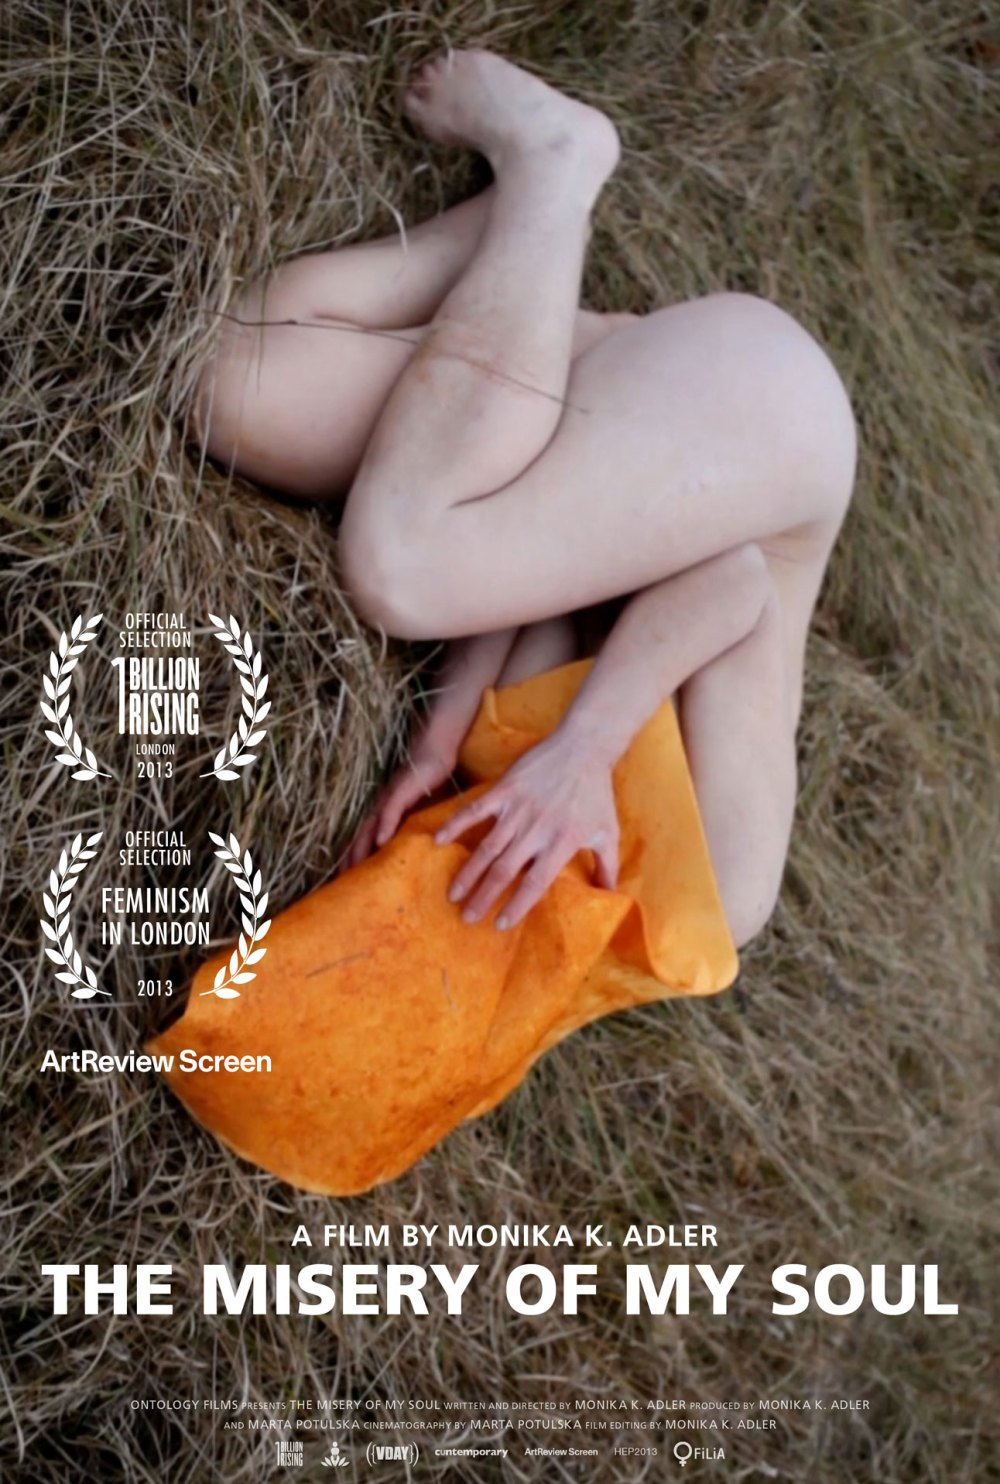 Monika K. Adler, The Misery of my Soul, 2013, film poster - Aeon Rose